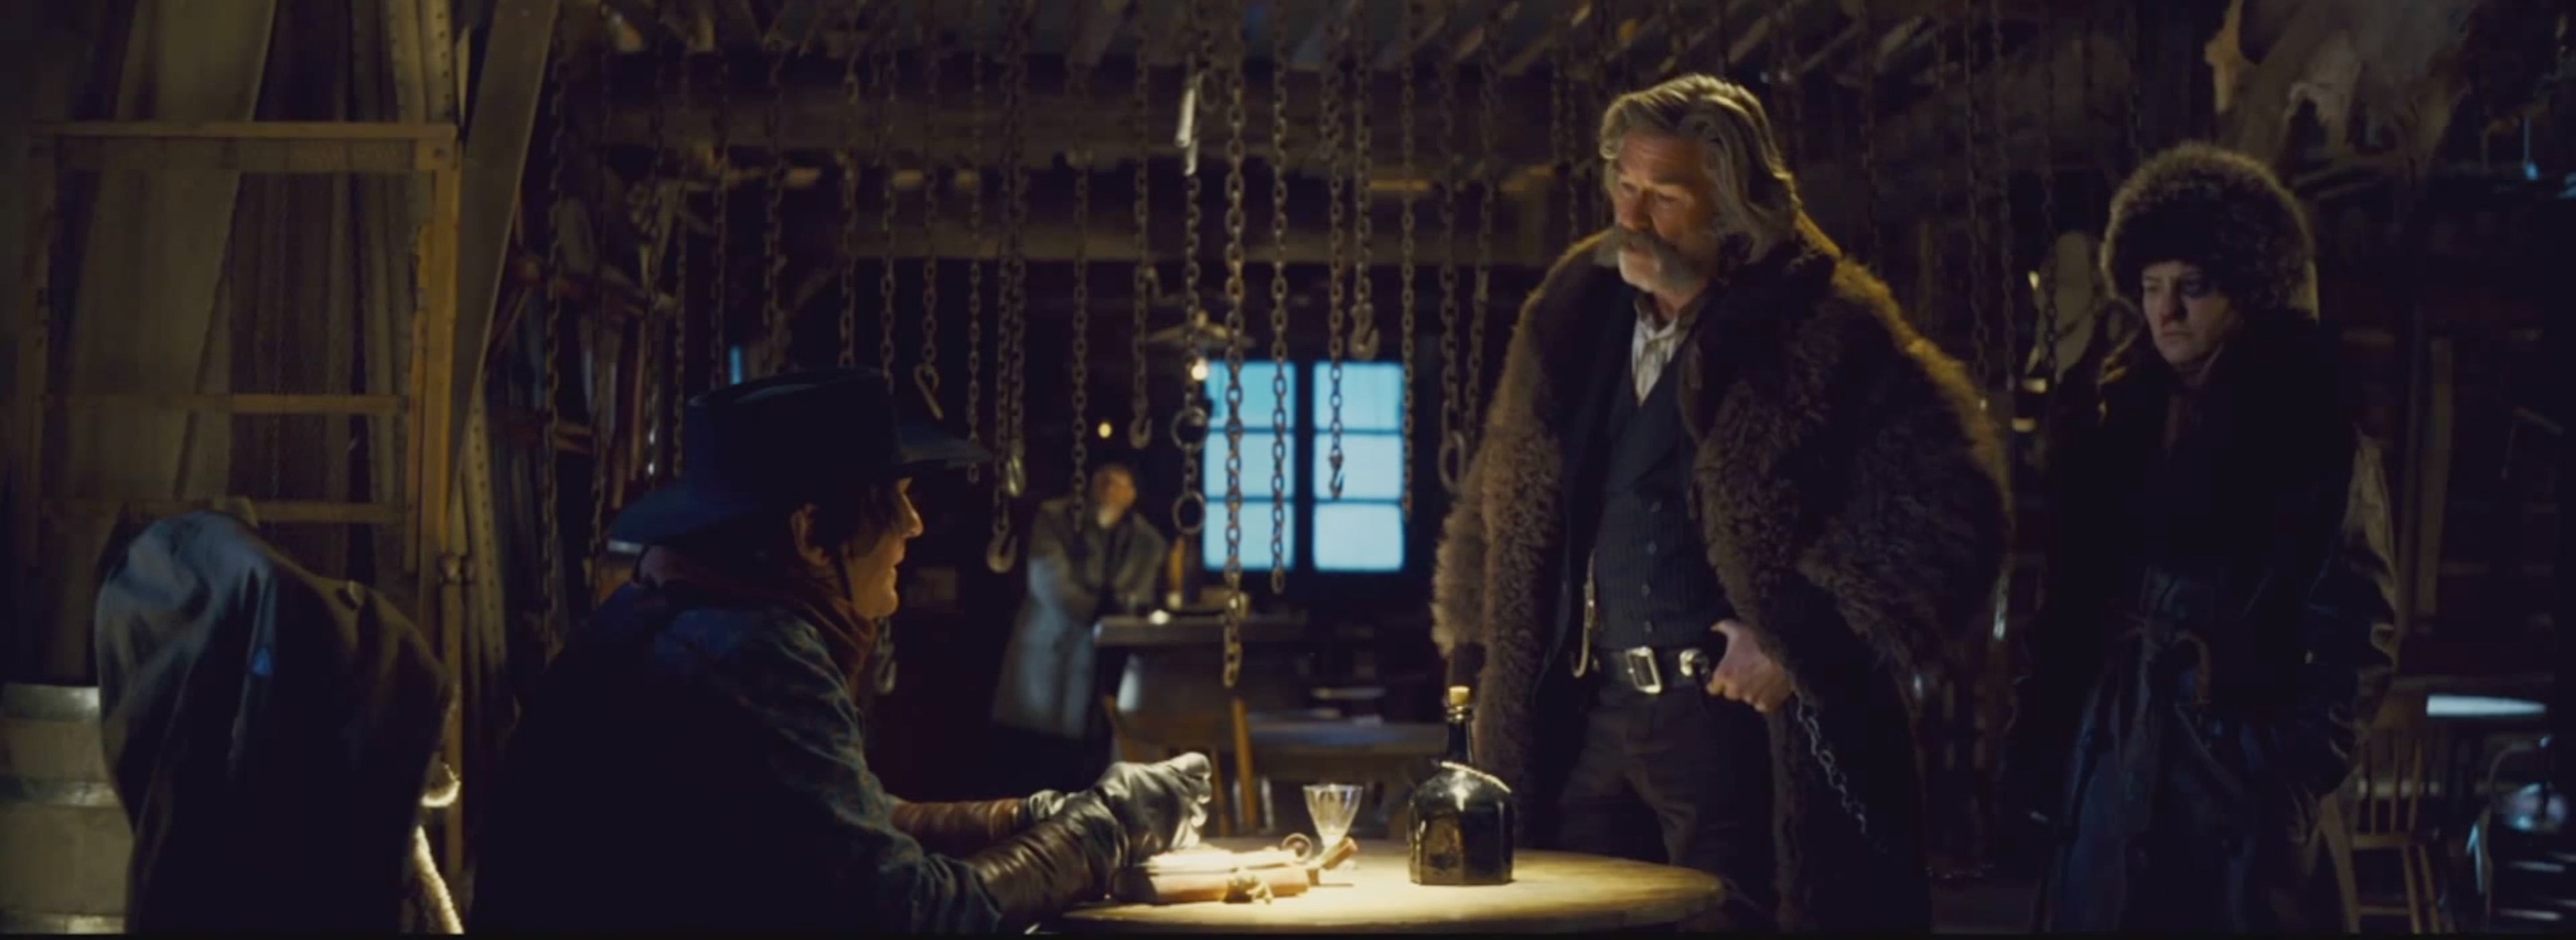 The-Hateful-Eight-Exclusive-8-minutes-Preview-3